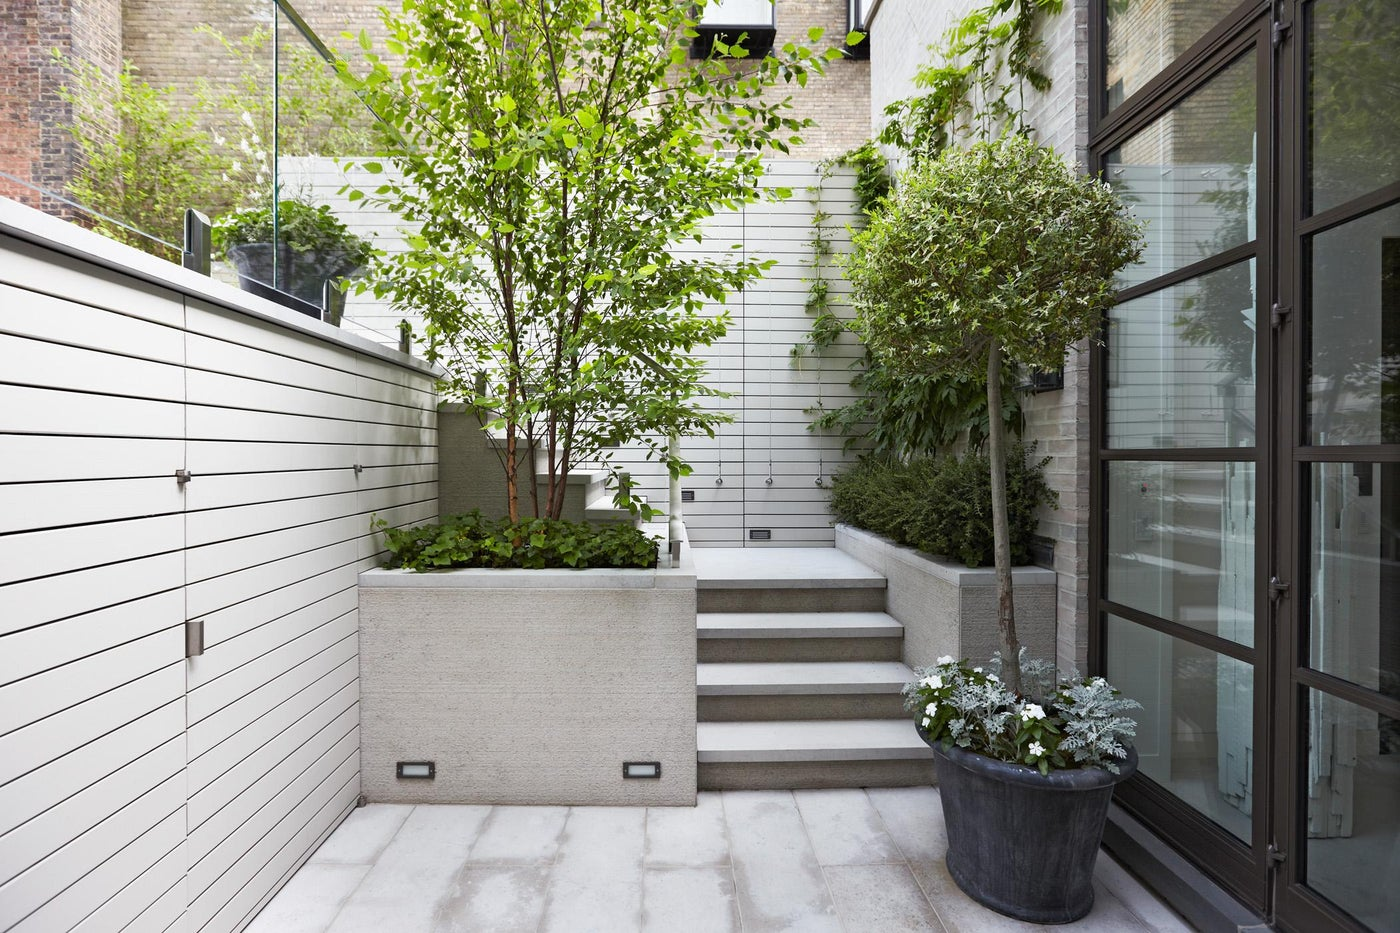 A new roof terrace detail with Landscape Architecture by Hollander Design